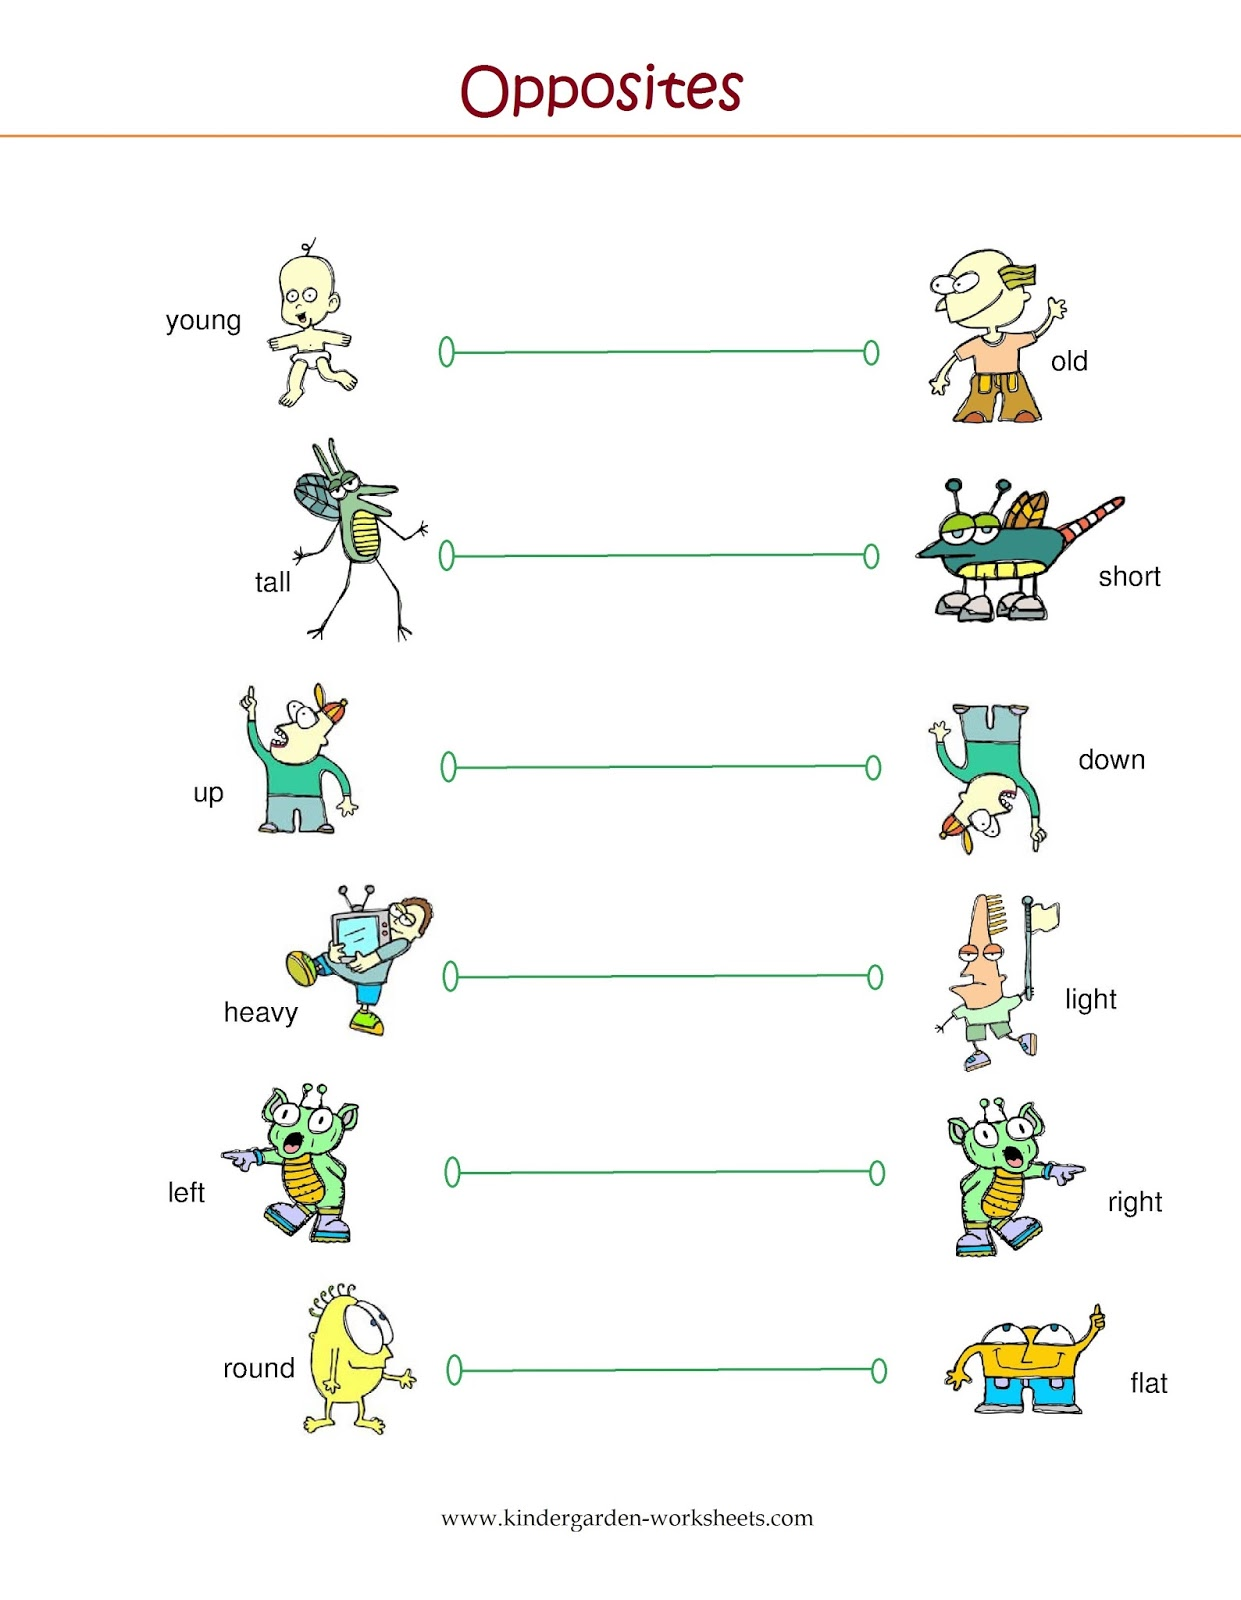 Kindergarten Worksheets Kindergarten Worksheets Opposite Words – Opposites Kindergarten Worksheets